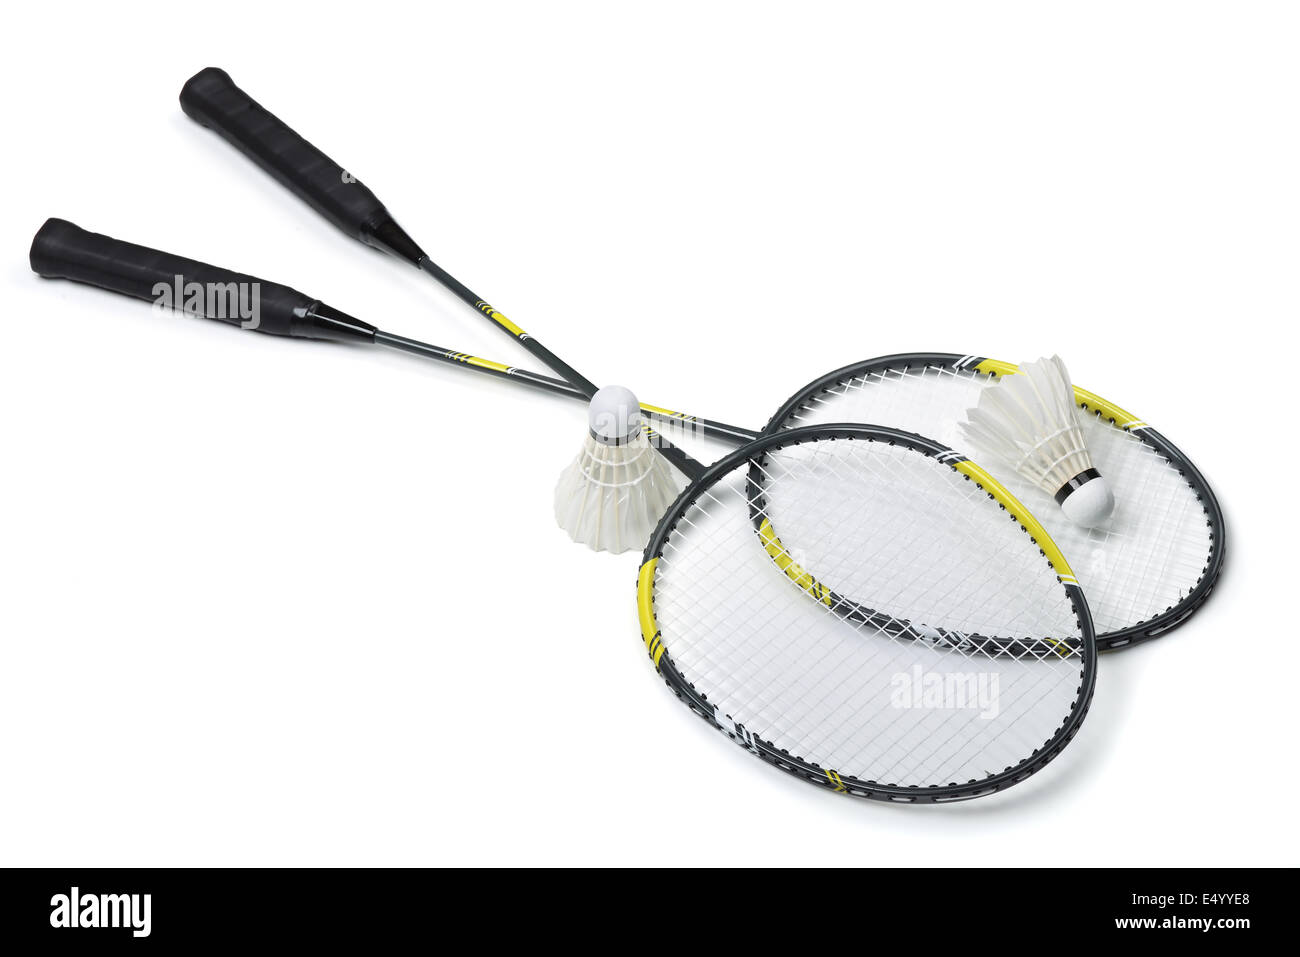 Badminton rackets and shuttlecocks isolated on white - Stock Image